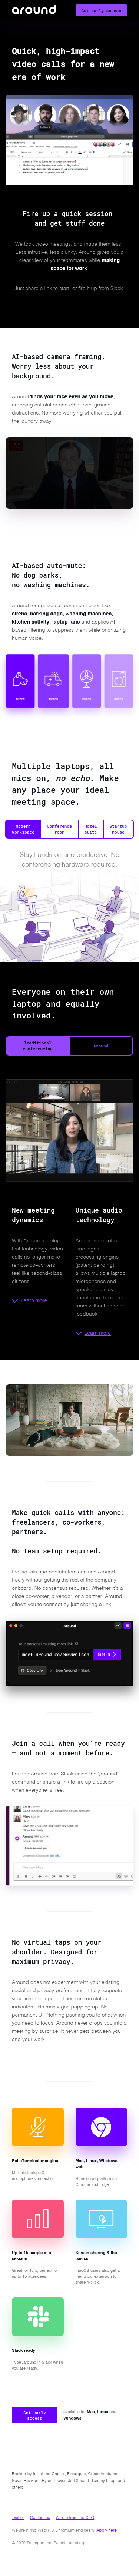 Example of Design for Computers & Electronics, Software, Mobile Landing Page by around.co | Mobile Landing Page Design